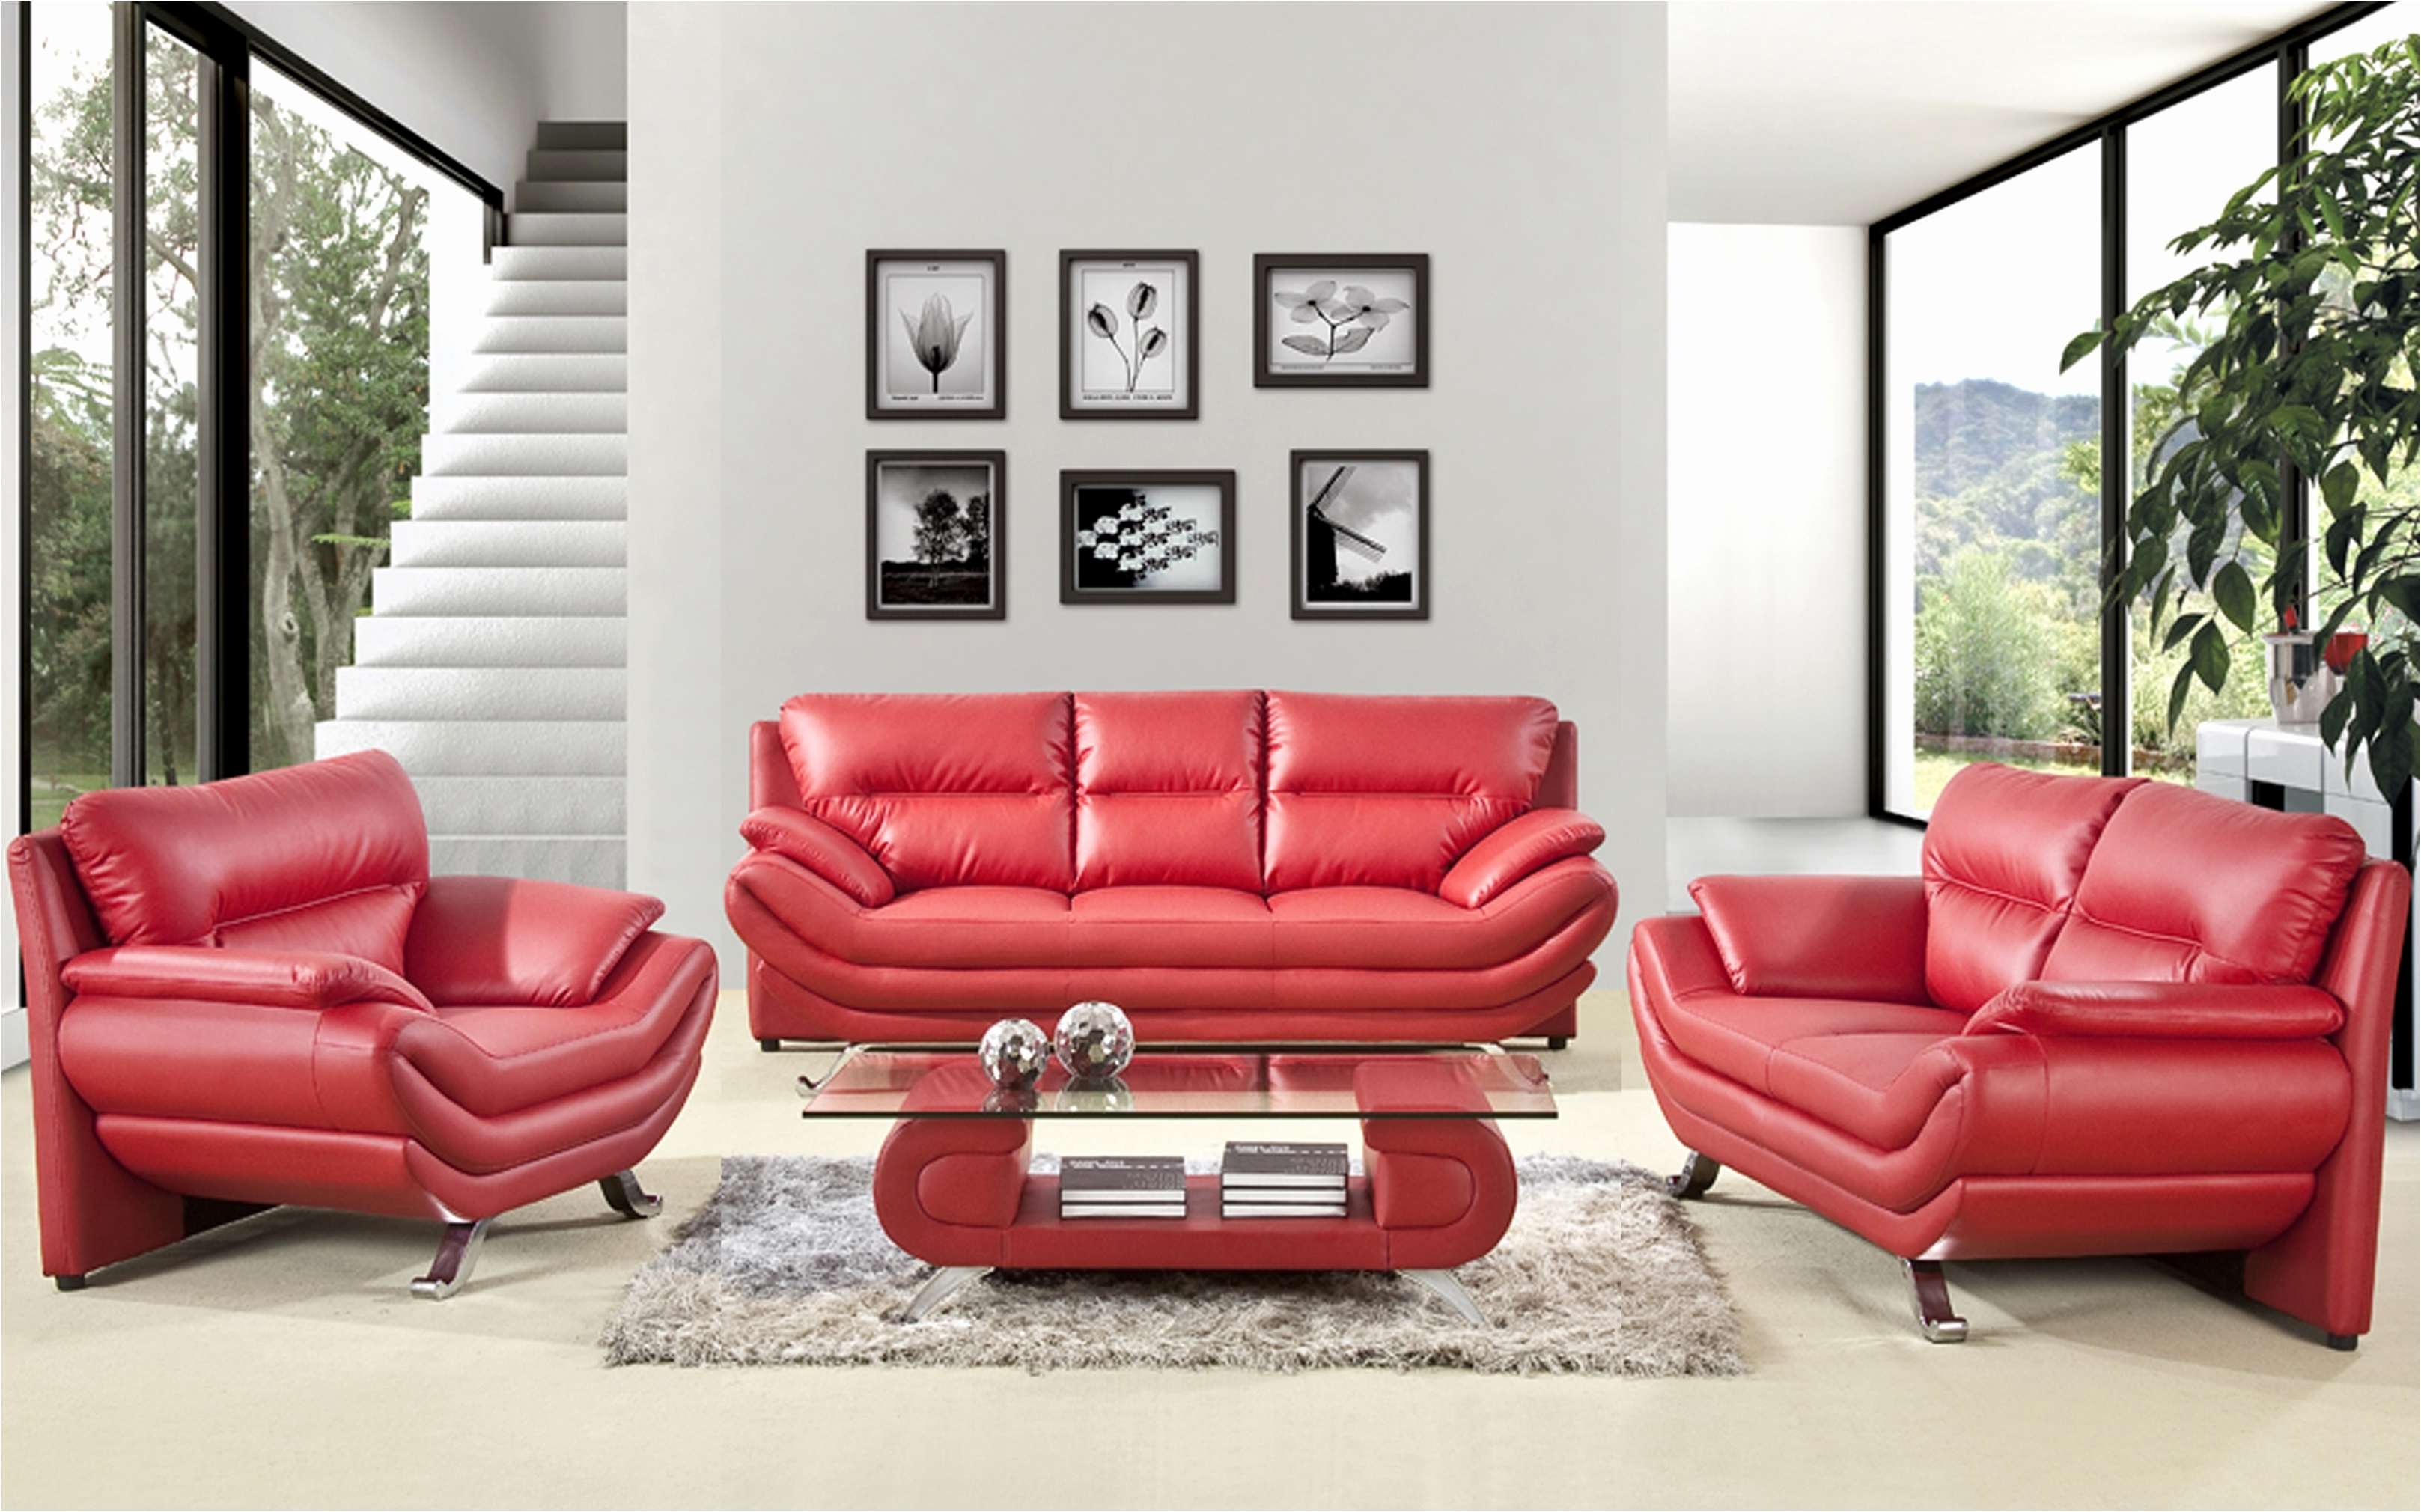 Awesome Red Leather Sofas Inspirational – Intuisiblog pertaining to Red Leather Couches And Loveseats (Image 1 of 15)